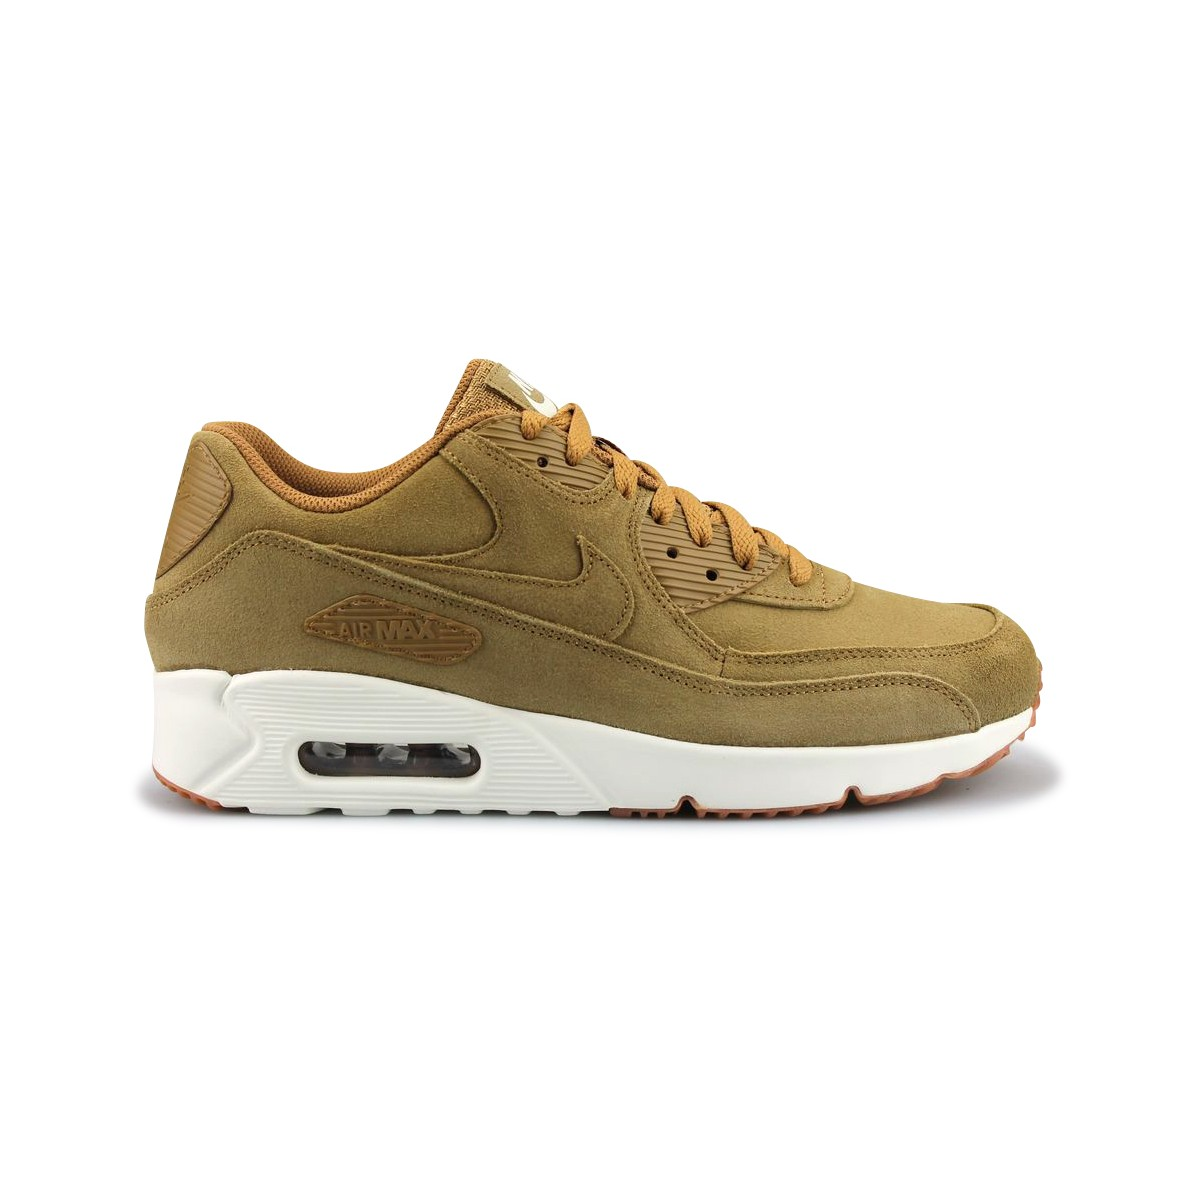 buy popular 1a906 1b9dc ... NIKE AIR MAX 90 ULTRA 2.0 LEATHER MARRON - Street Shoes Addict ...